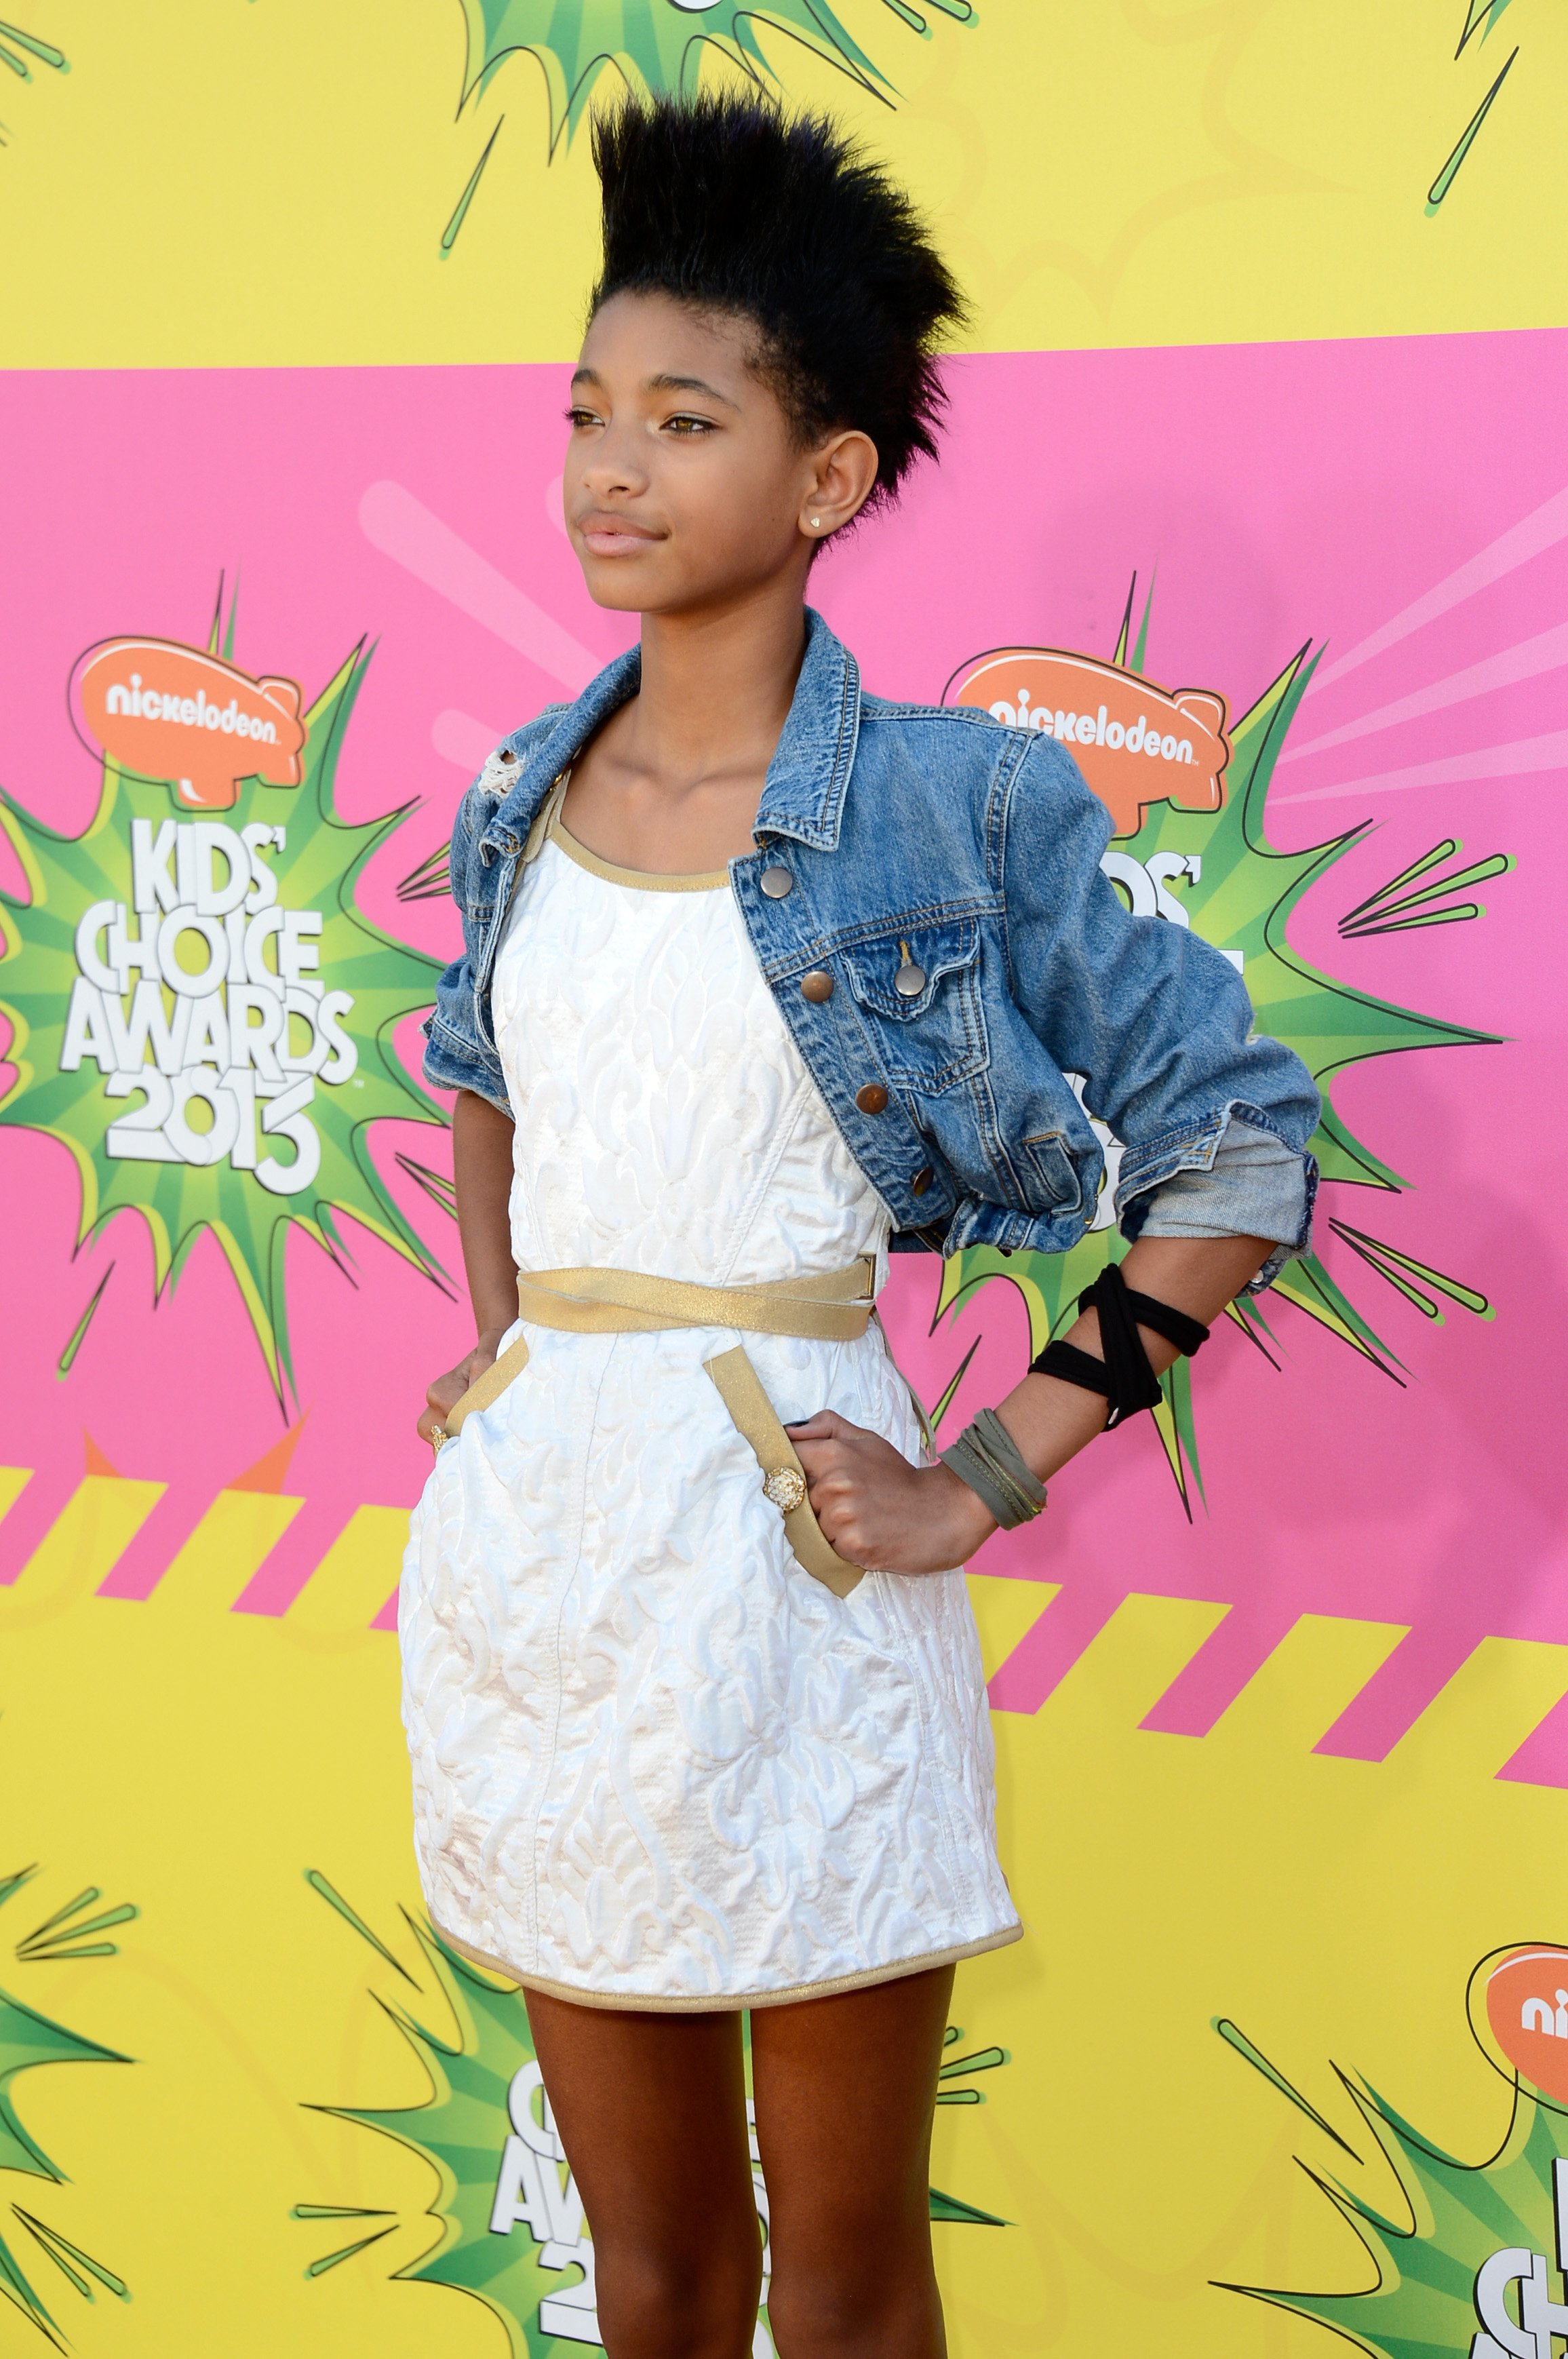 Willow Smith at the 2008 Kid's Choice Awards | Photo: Getty Images